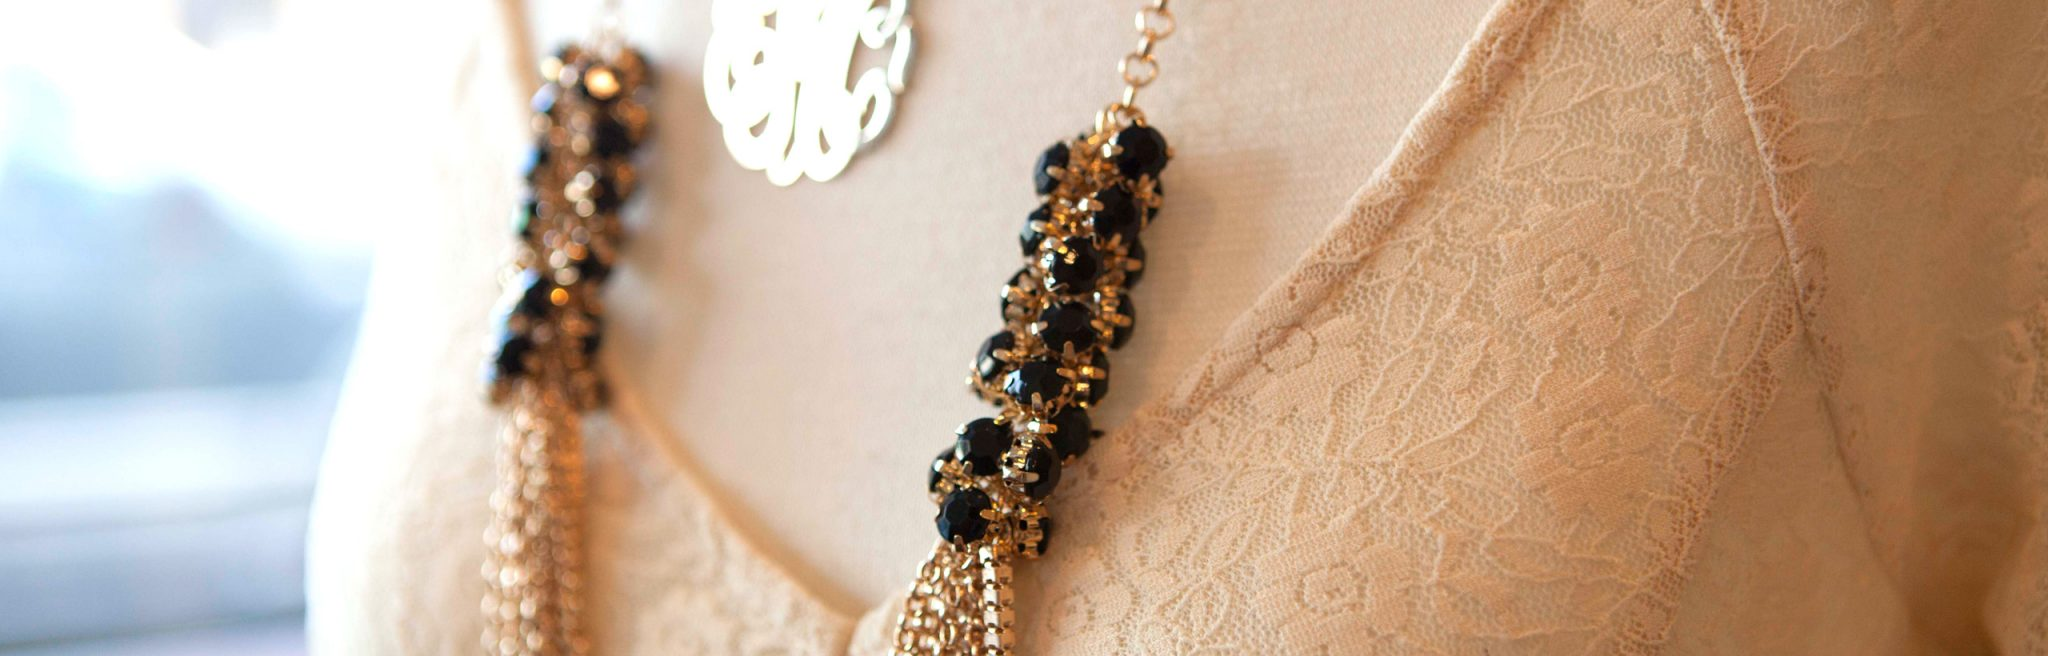 TTD-SHOPPING-necklace